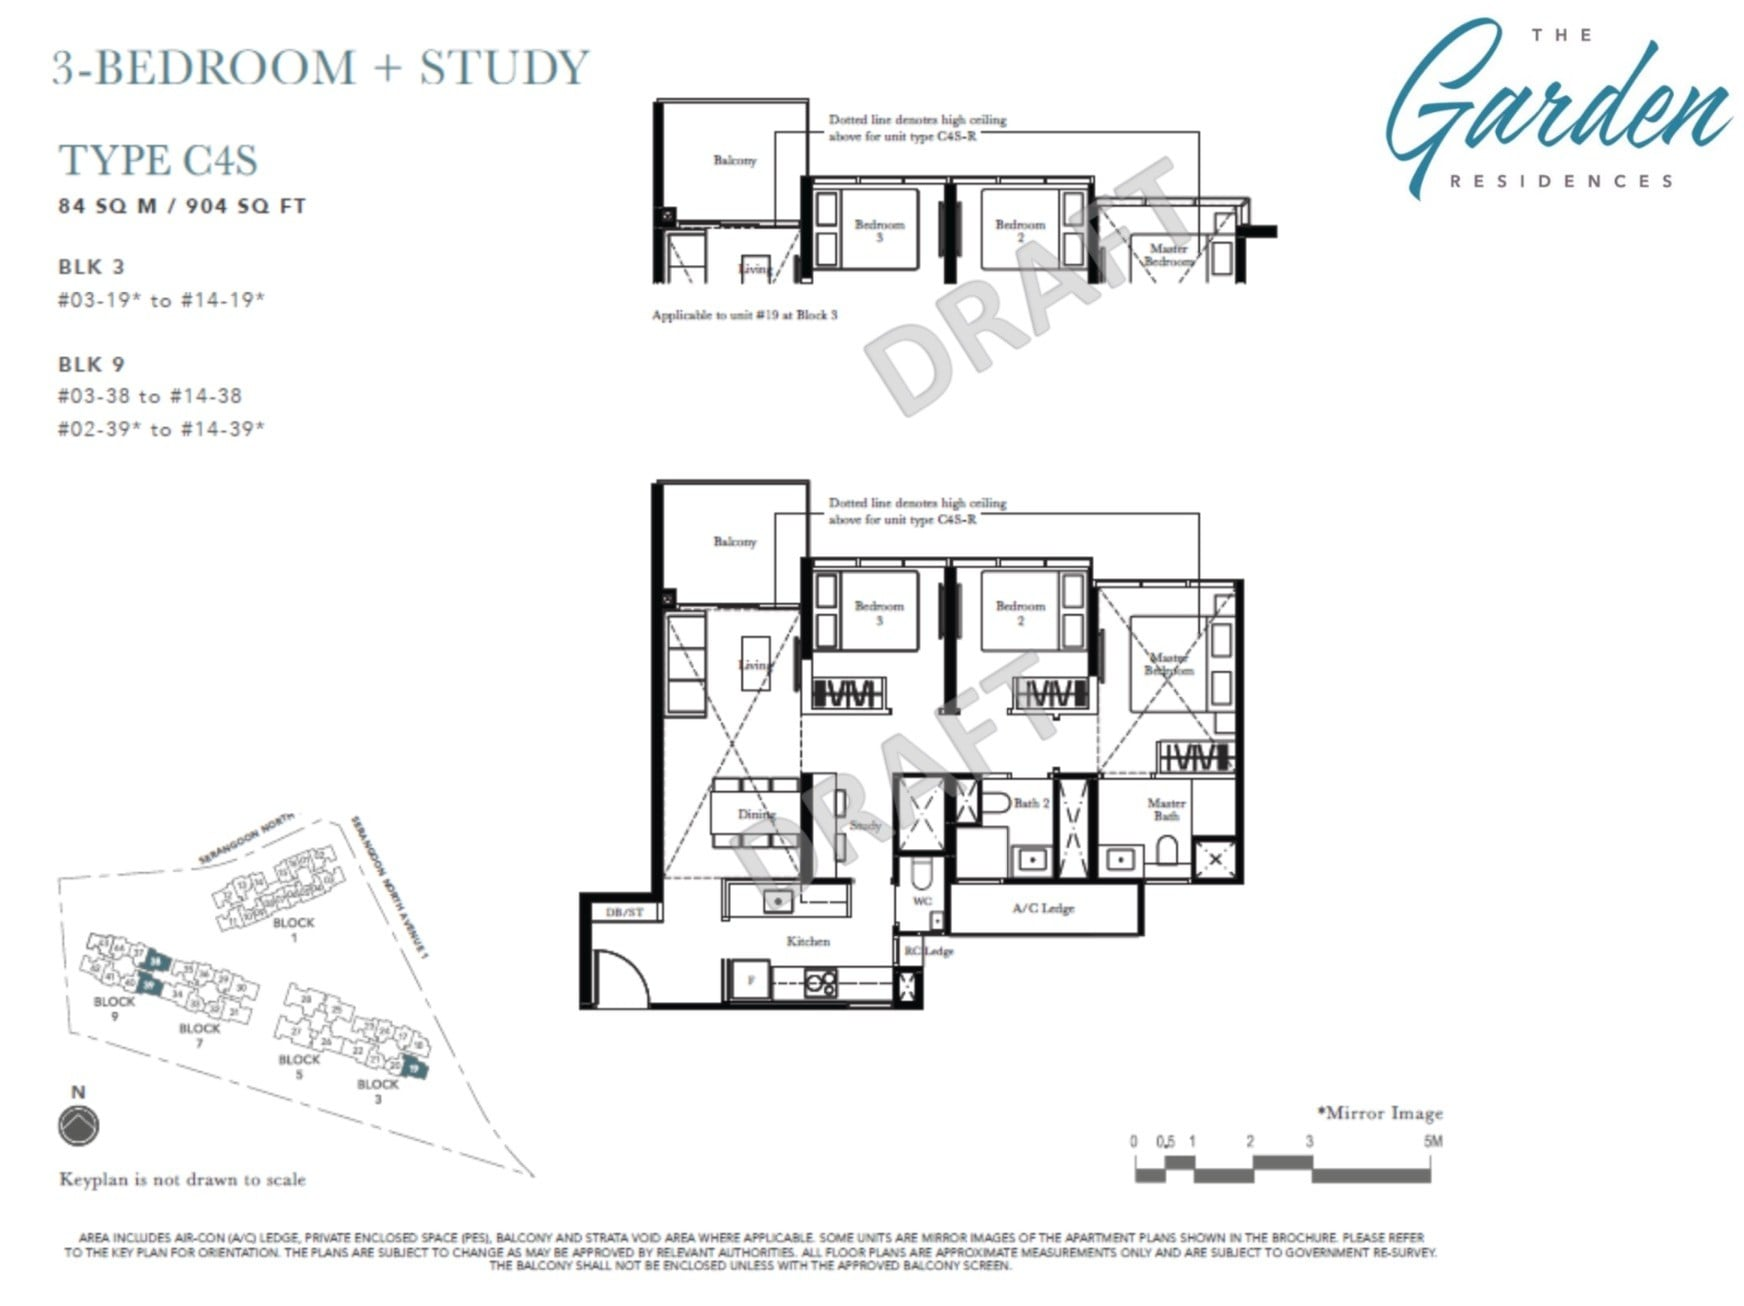 3br-the-garden-residences-floor-plan